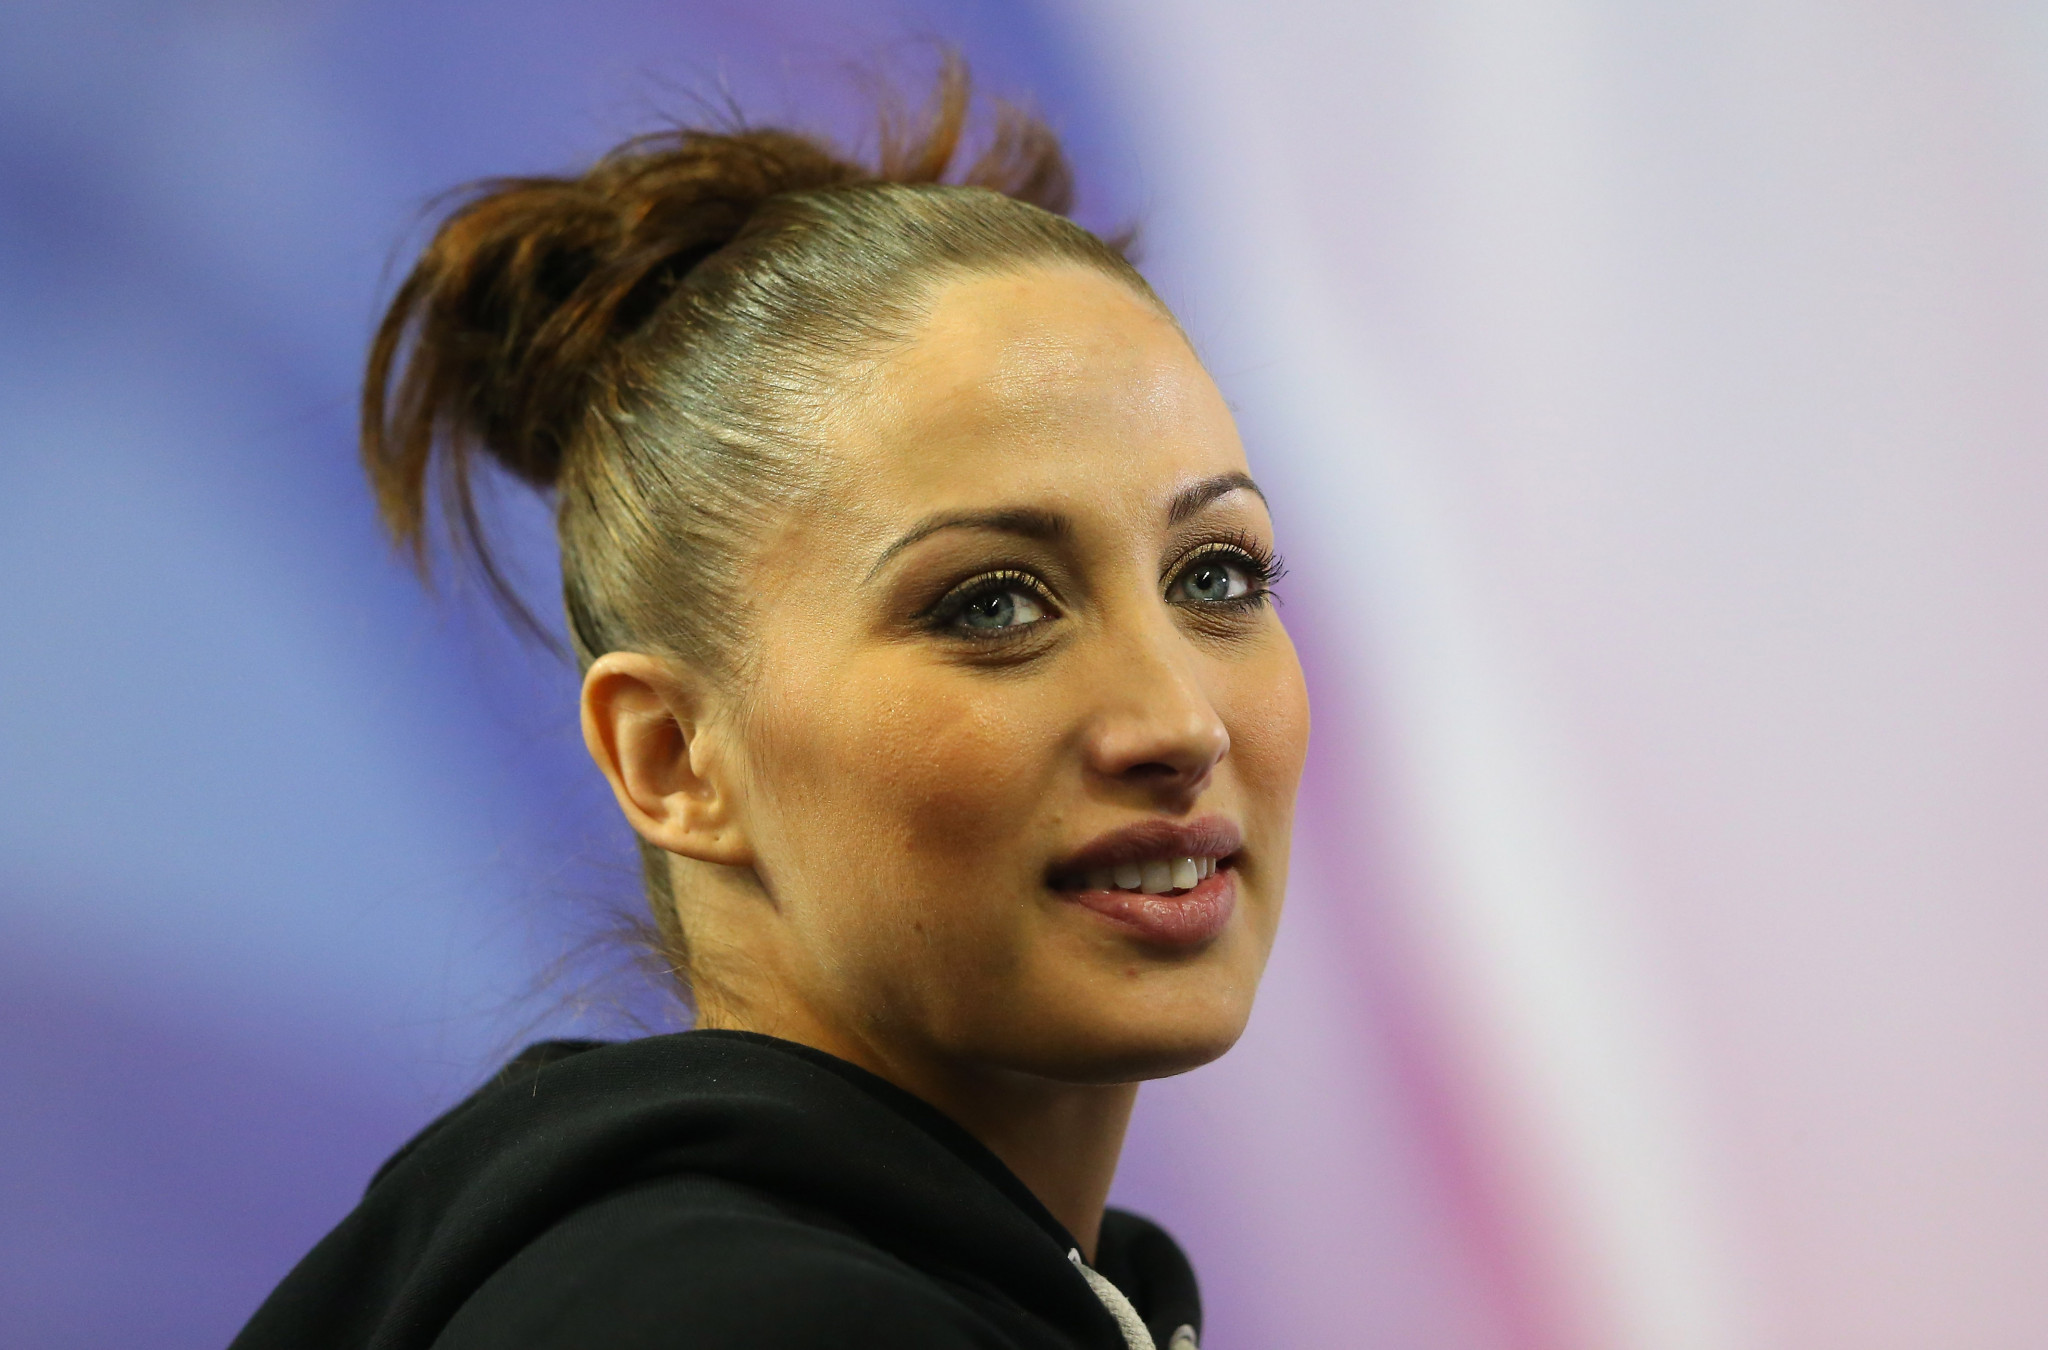 Lisa Mason is one of those gymnasts who have reported abuse ©Getty Images